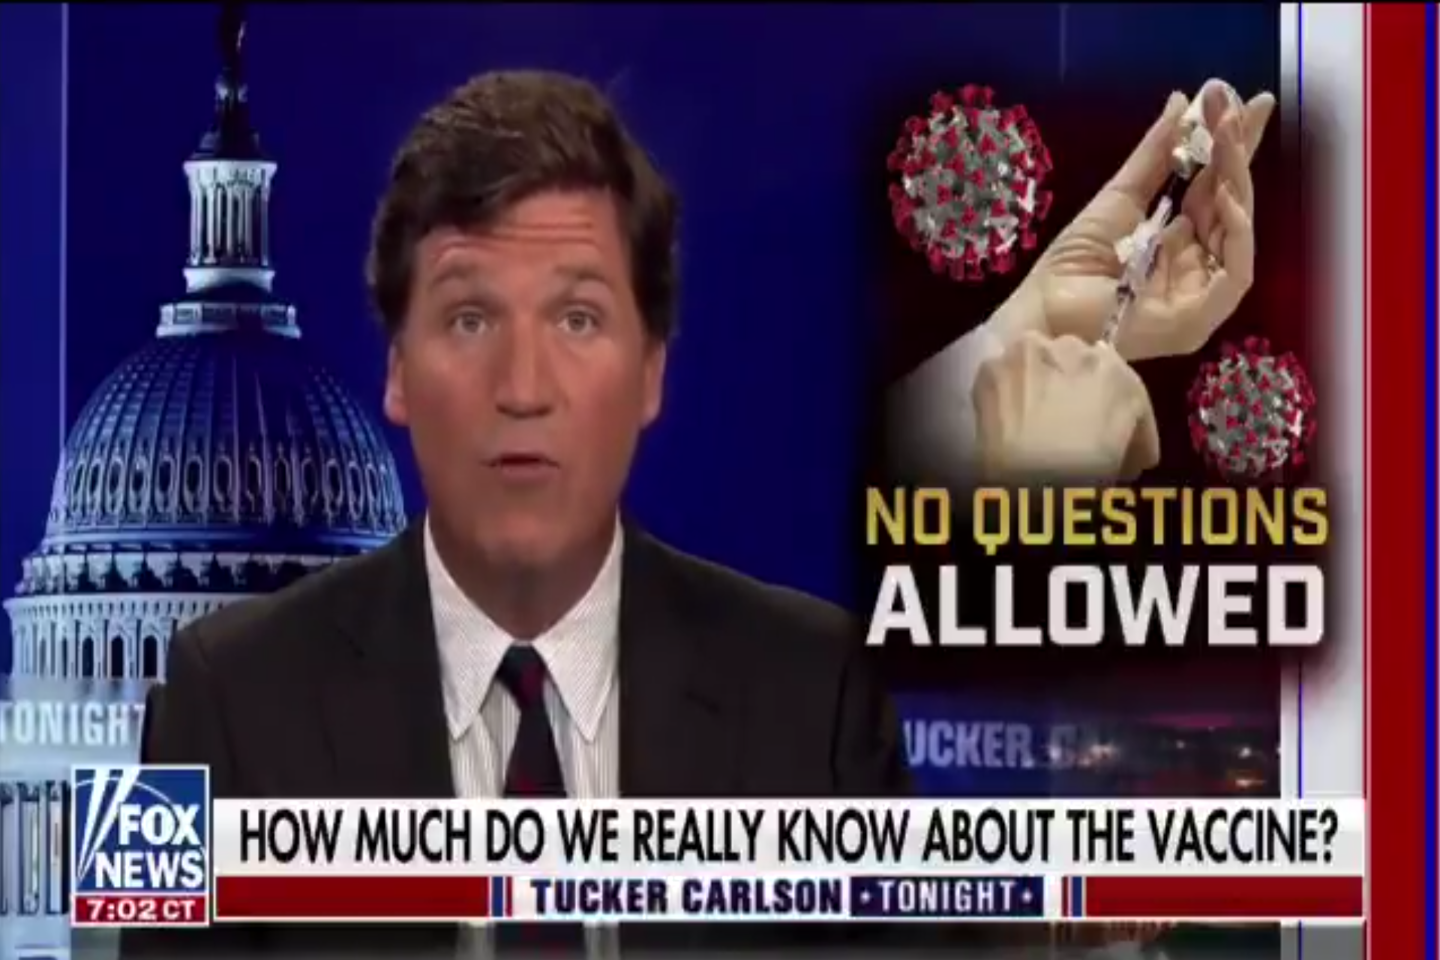 Tucker Carlson Is Telling His Viewers the COVID Vaccine Is a Death Trap - vice